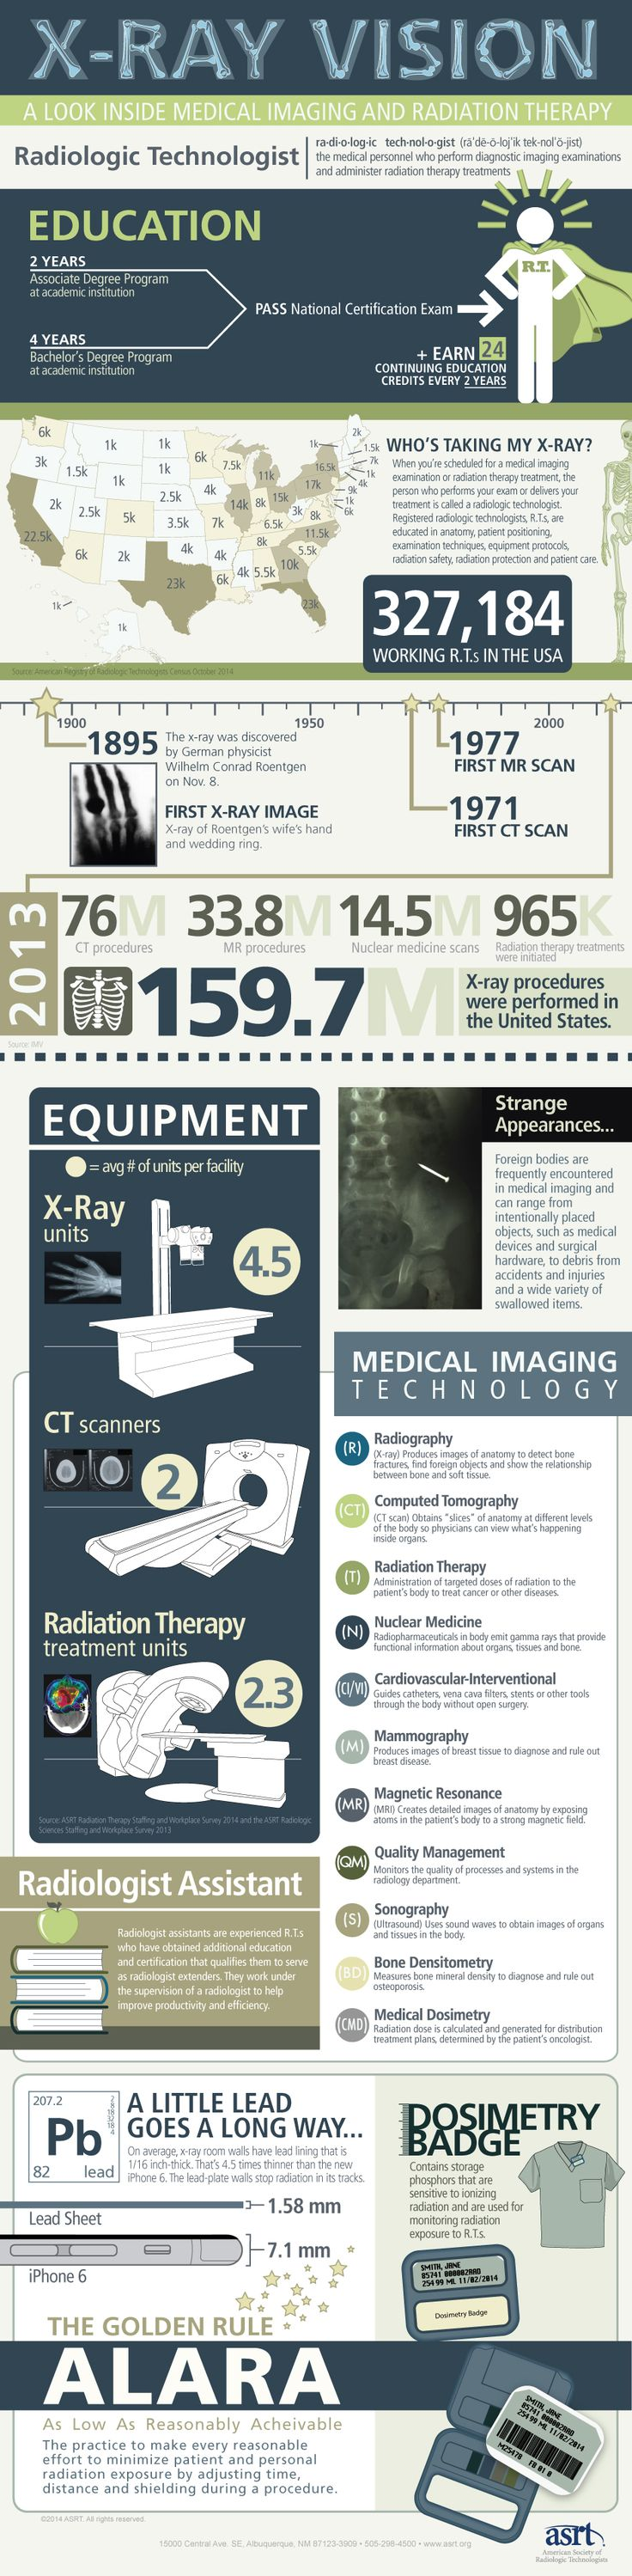 xray vision infographic from asrt - X Ray Technologist Job Description